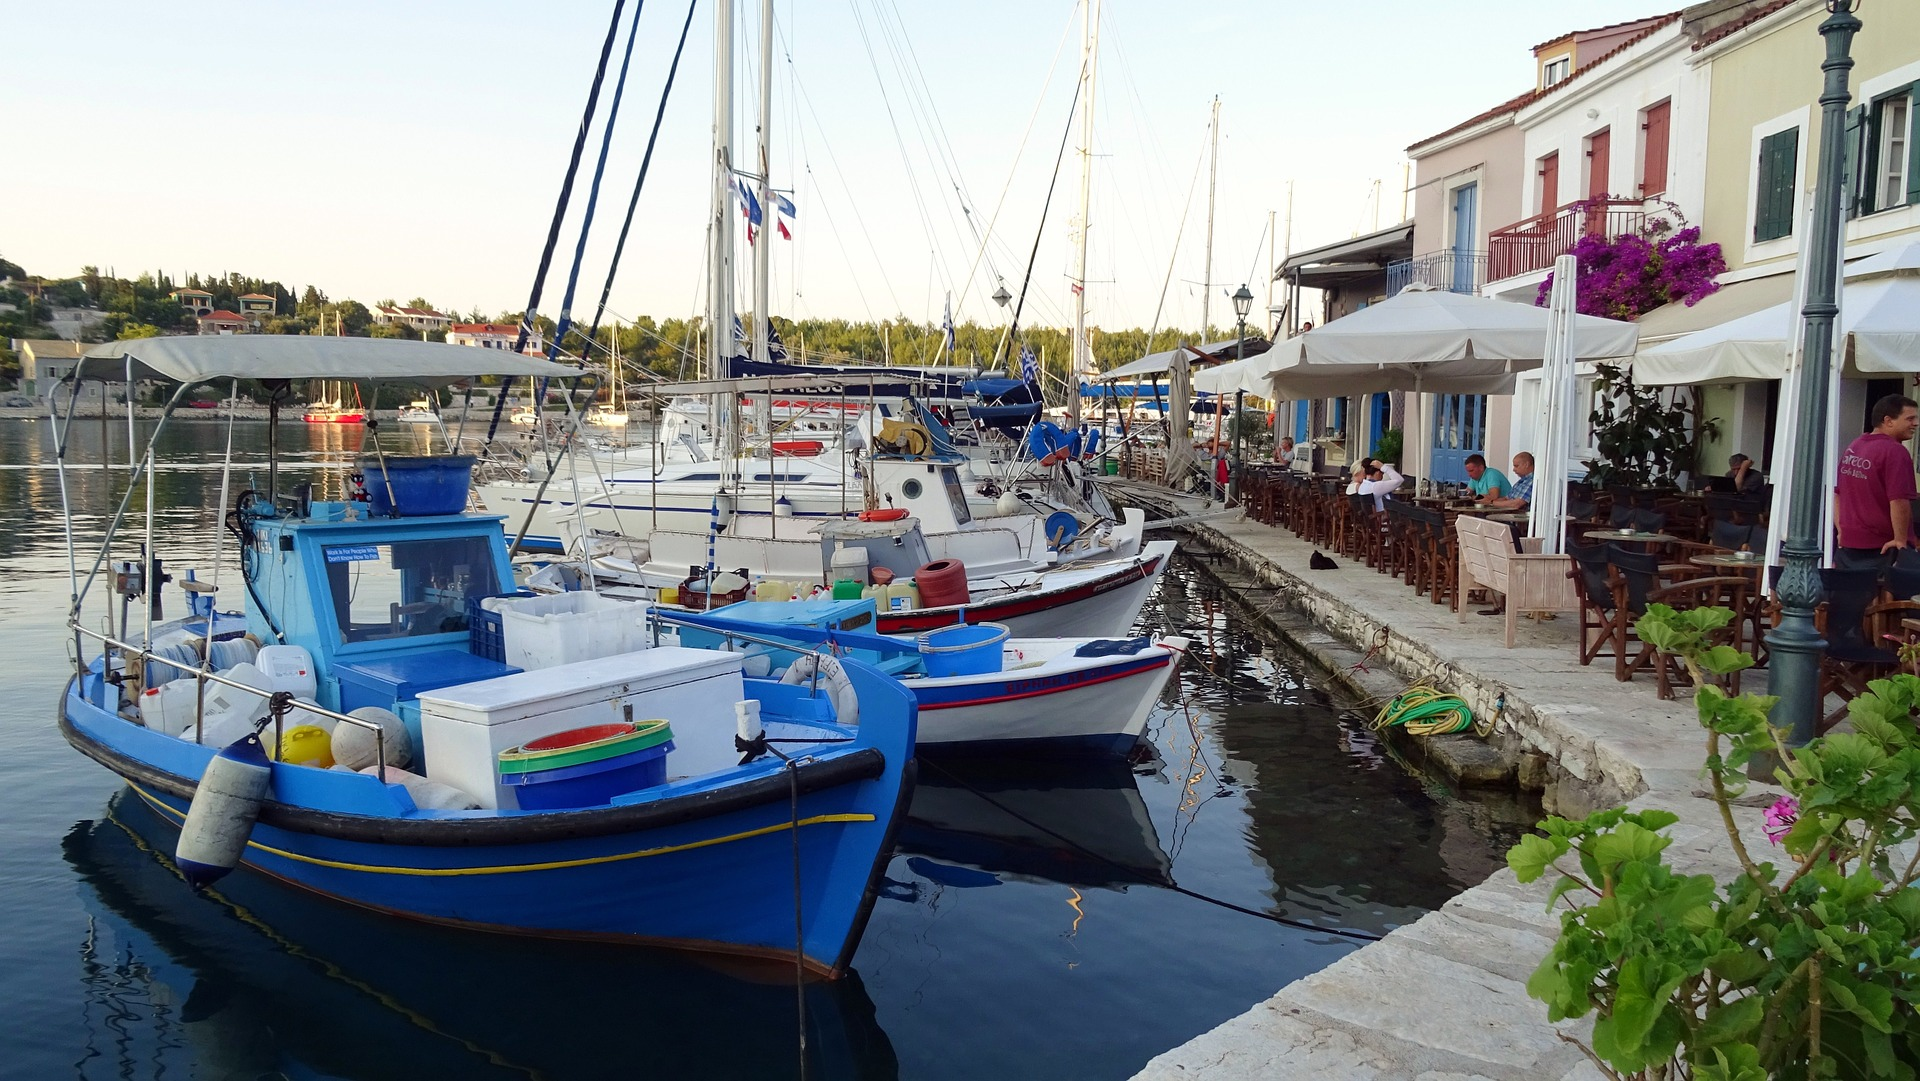 Fiscardo harbour, downloaded from the Internet